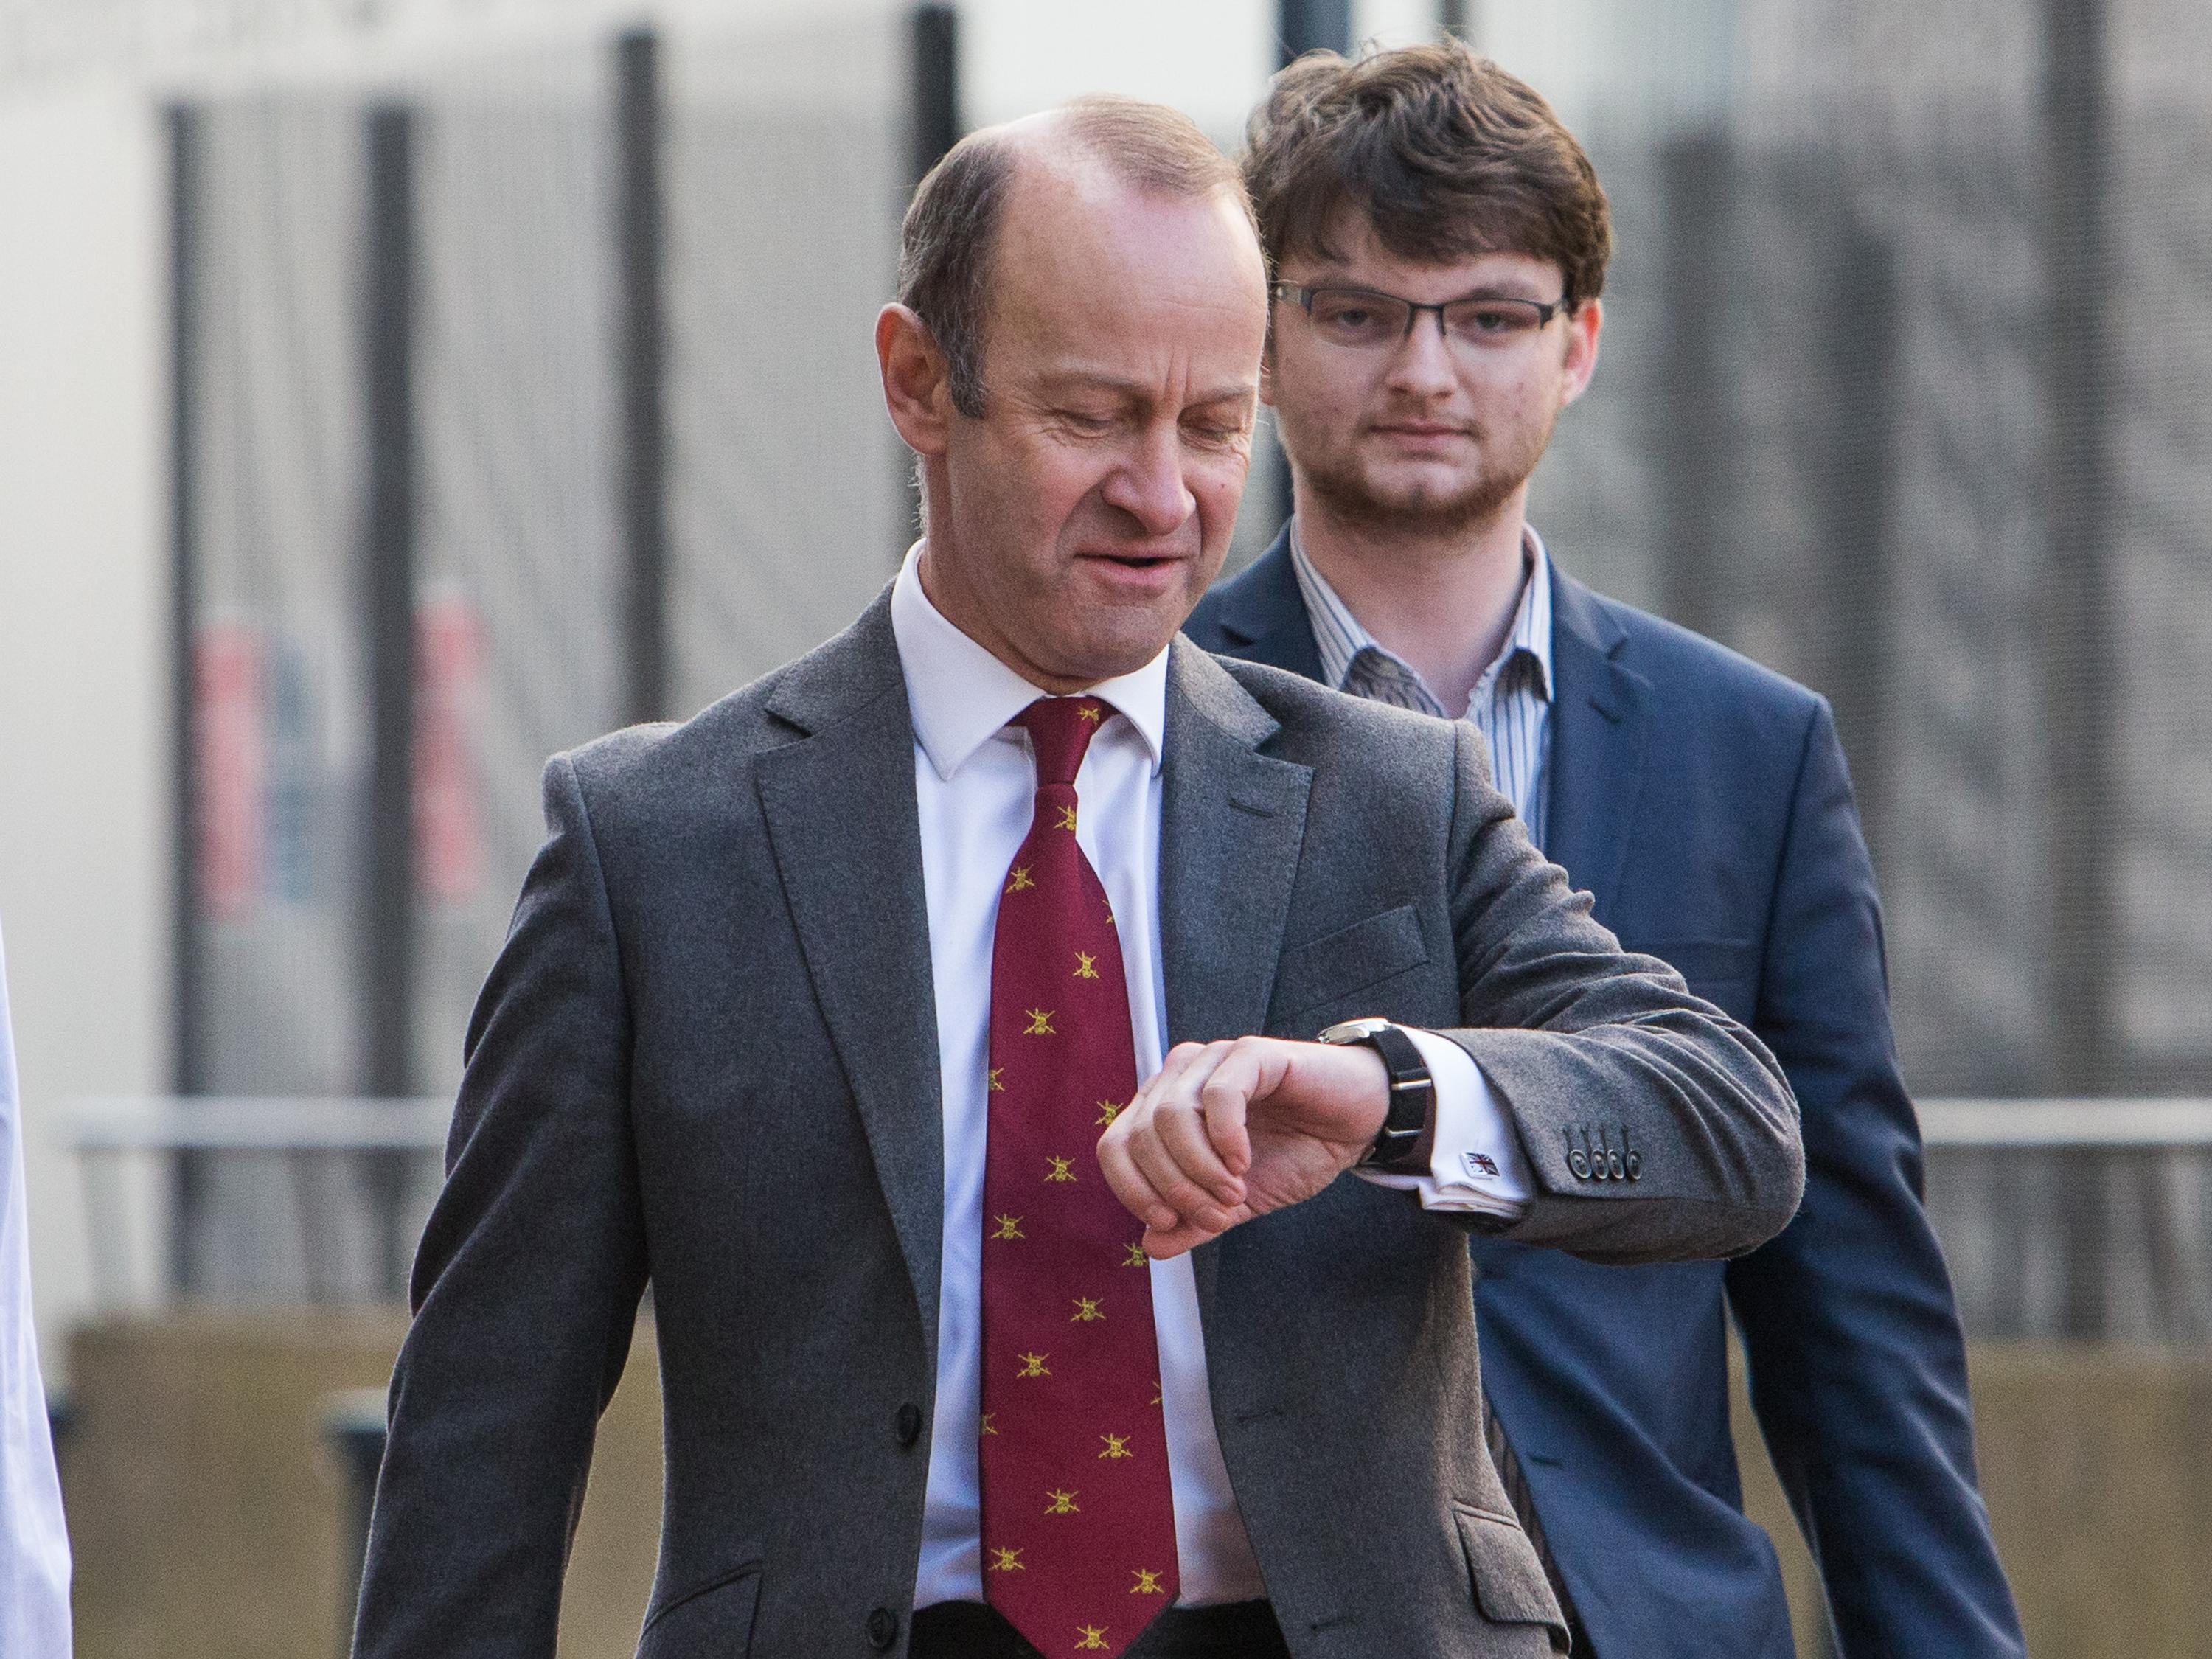 Henry Bolton could be sacked as Ukip leader TODAY as party members gather to vote on his future